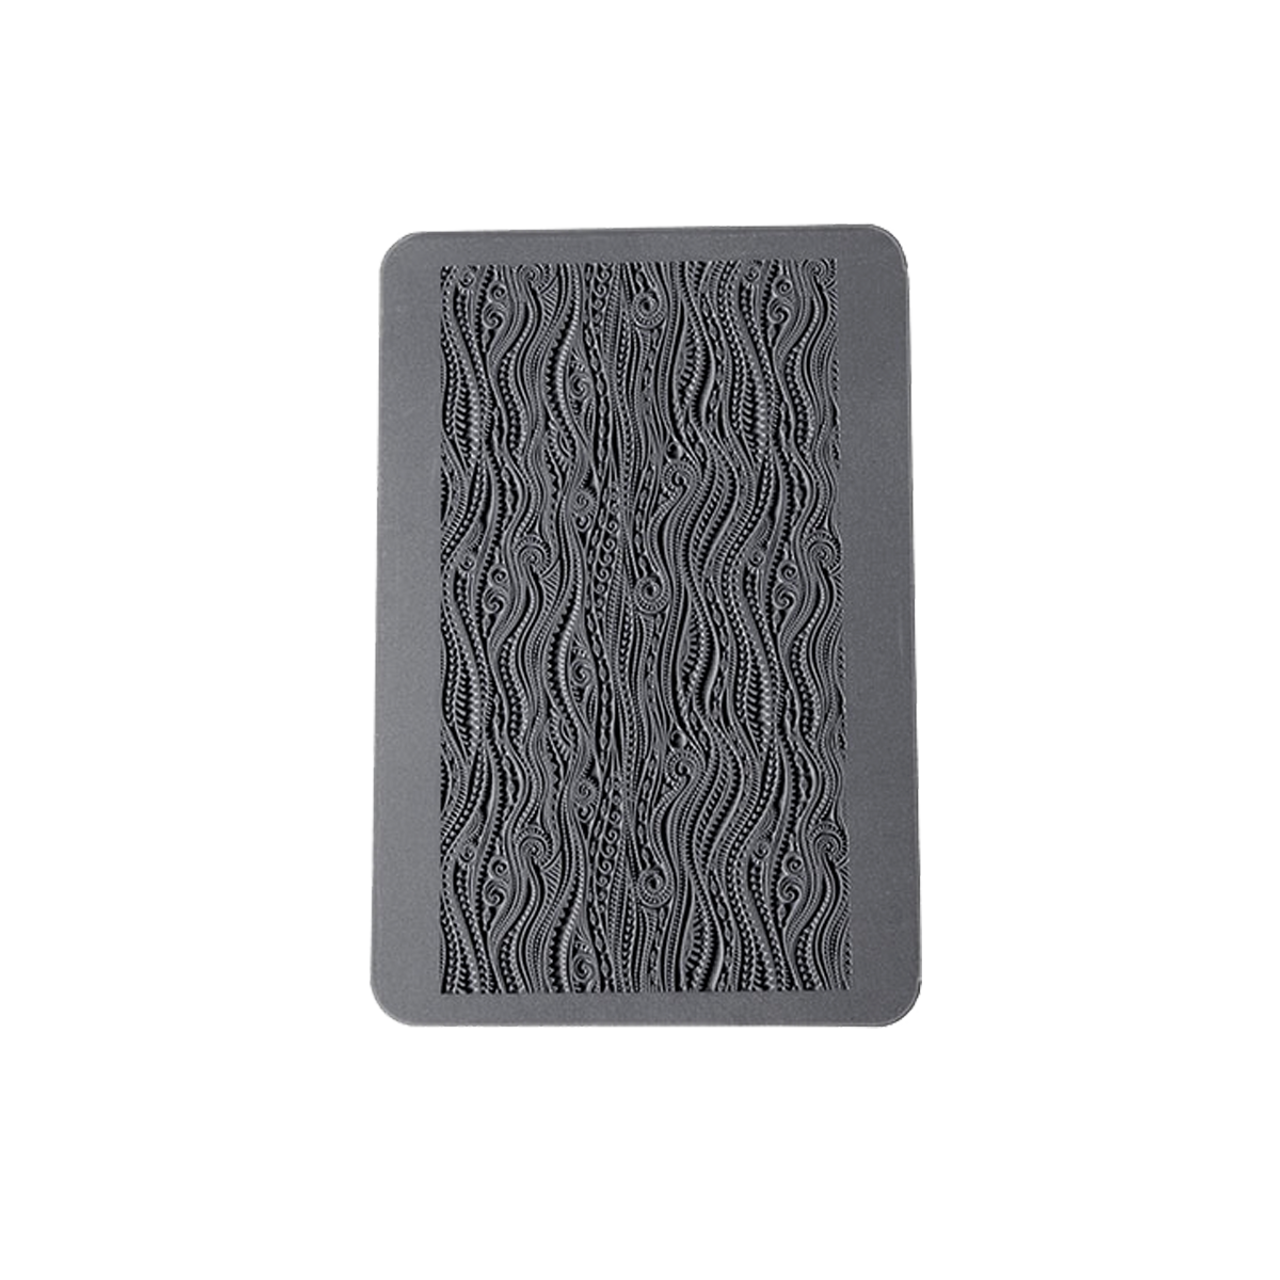 Rollable Texture Tile - Tribal Vines